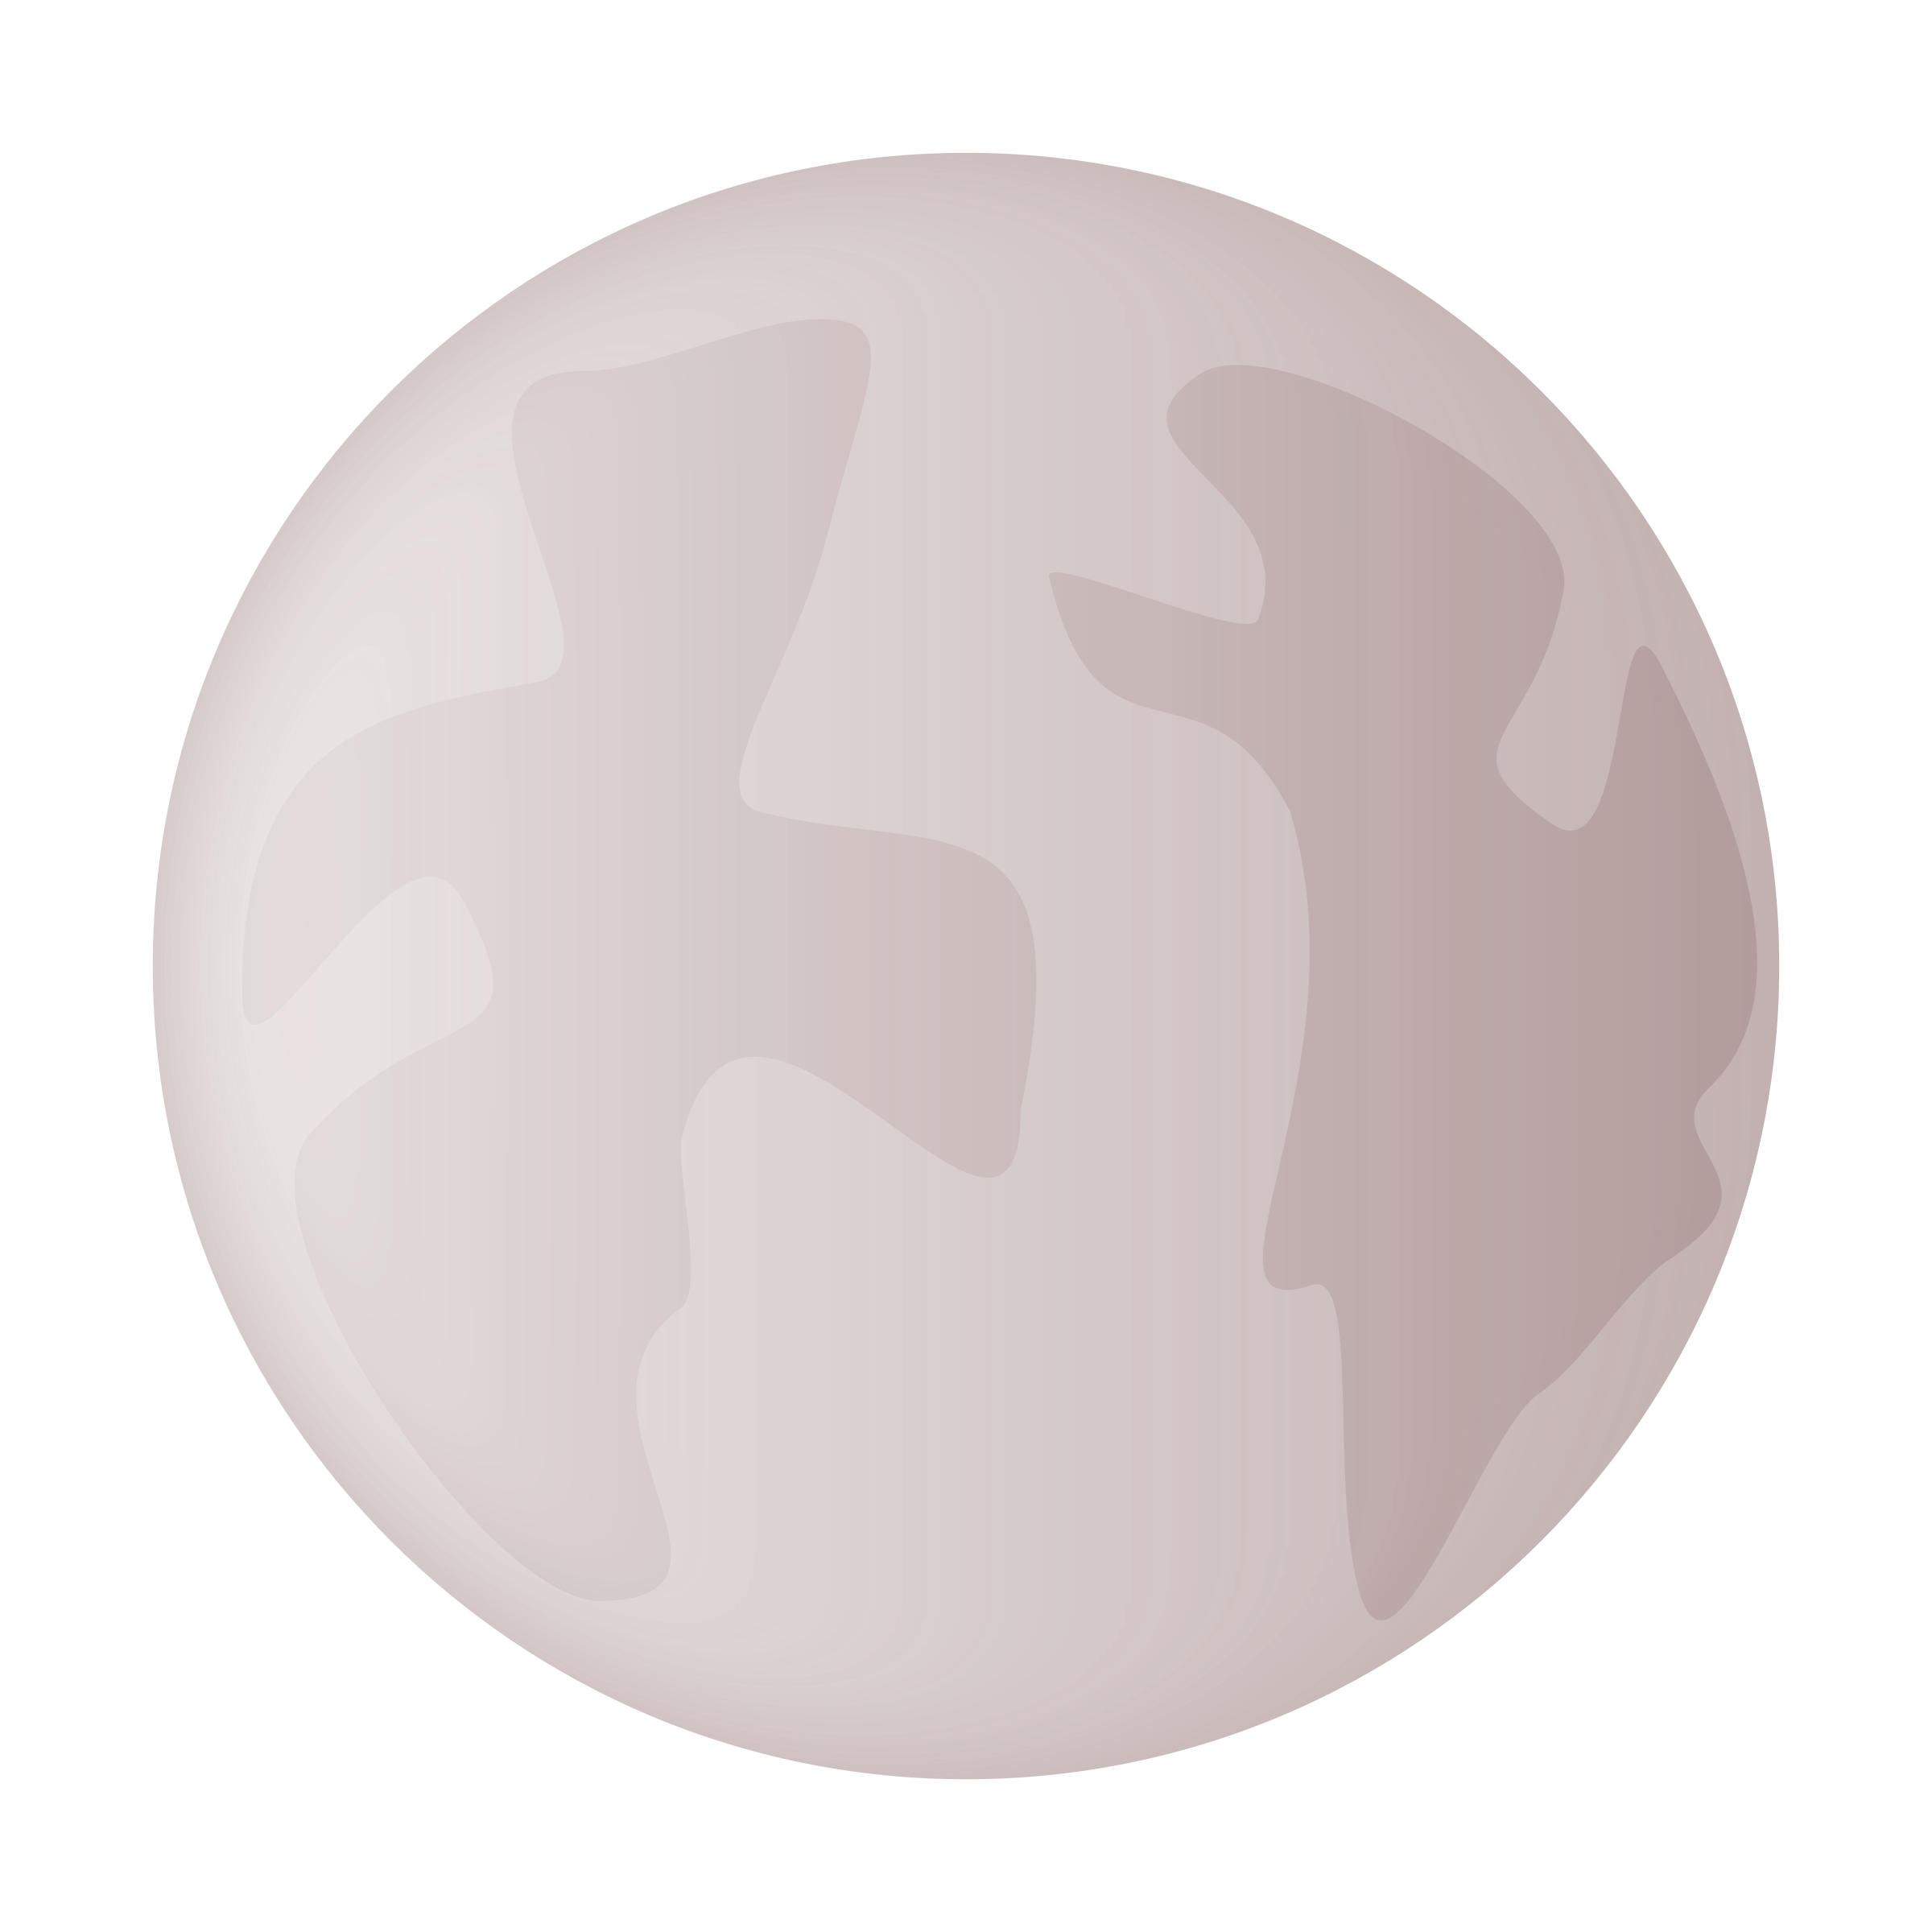 Small icon of planet. Planets clipart grey